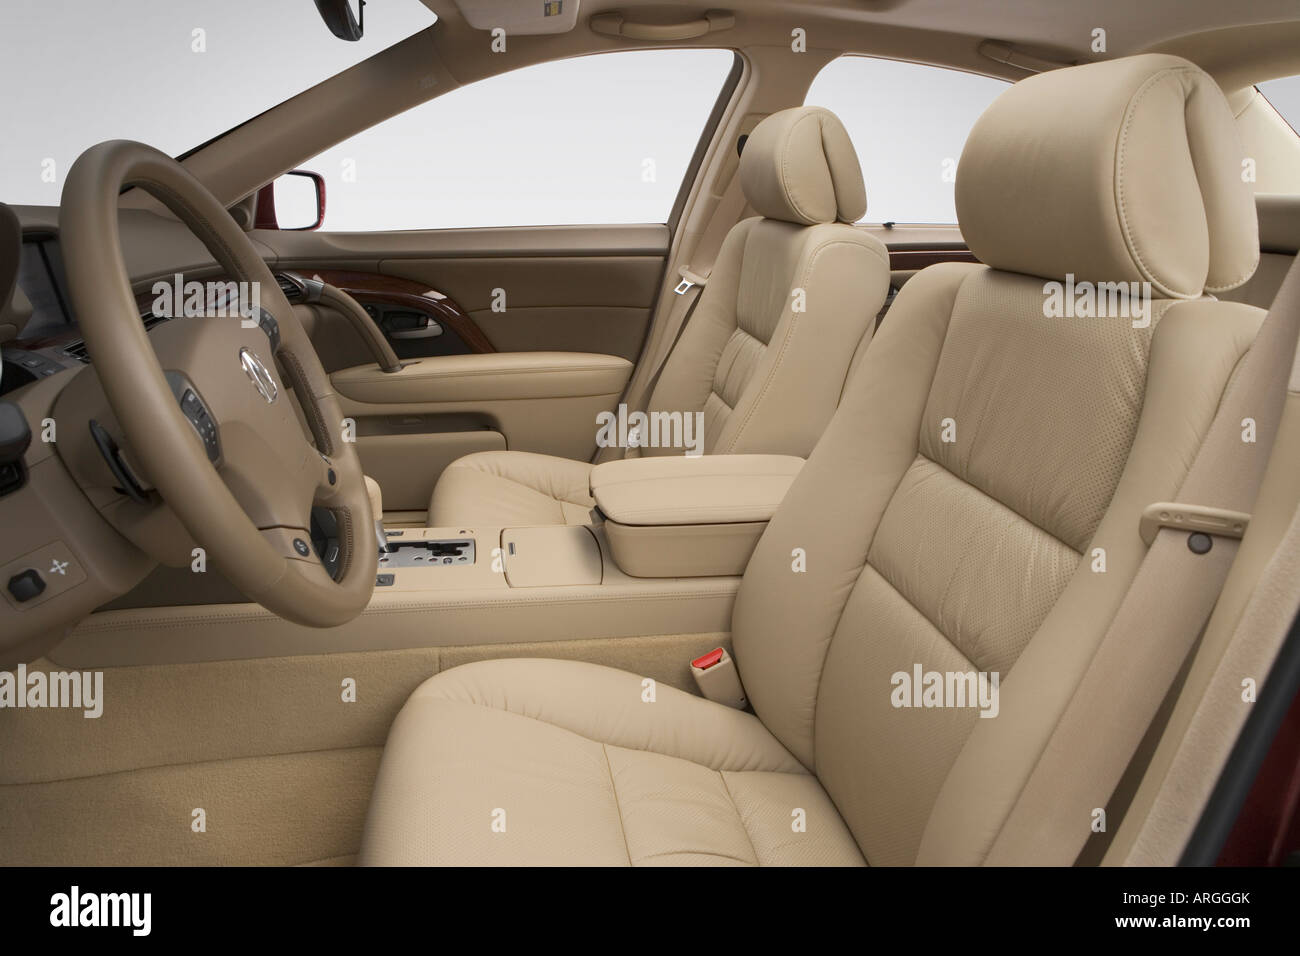 Superb 2007 Acura Rl In Red Front Seats Stock Photo 16049346 Alamy Spiritservingveterans Wood Chair Design Ideas Spiritservingveteransorg